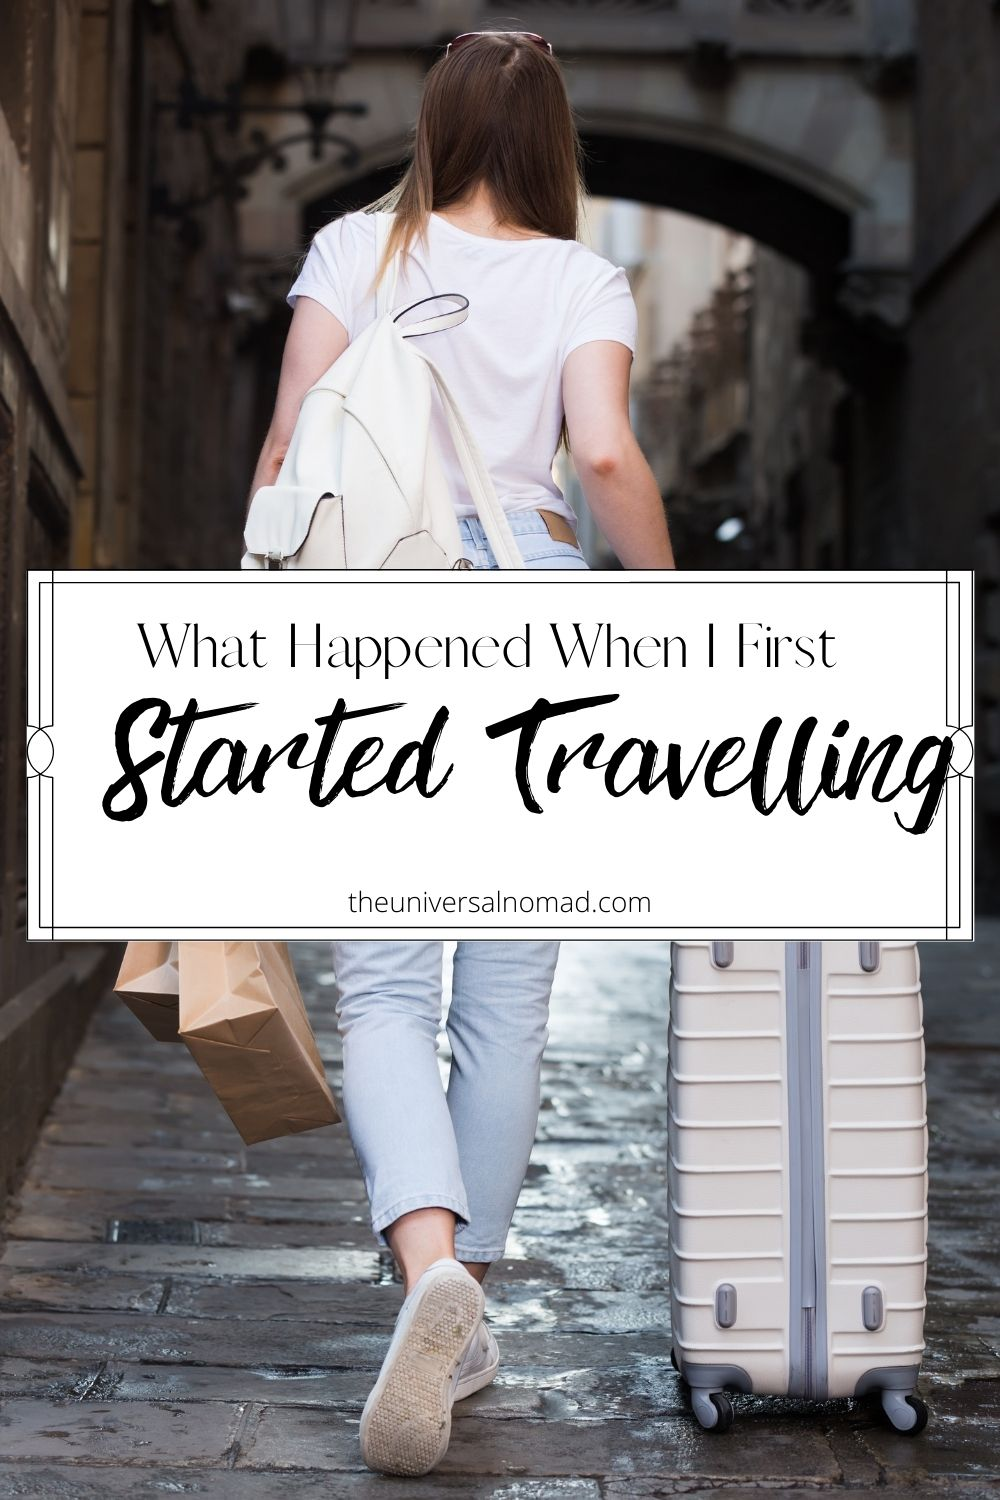 What happened when I first started travelling